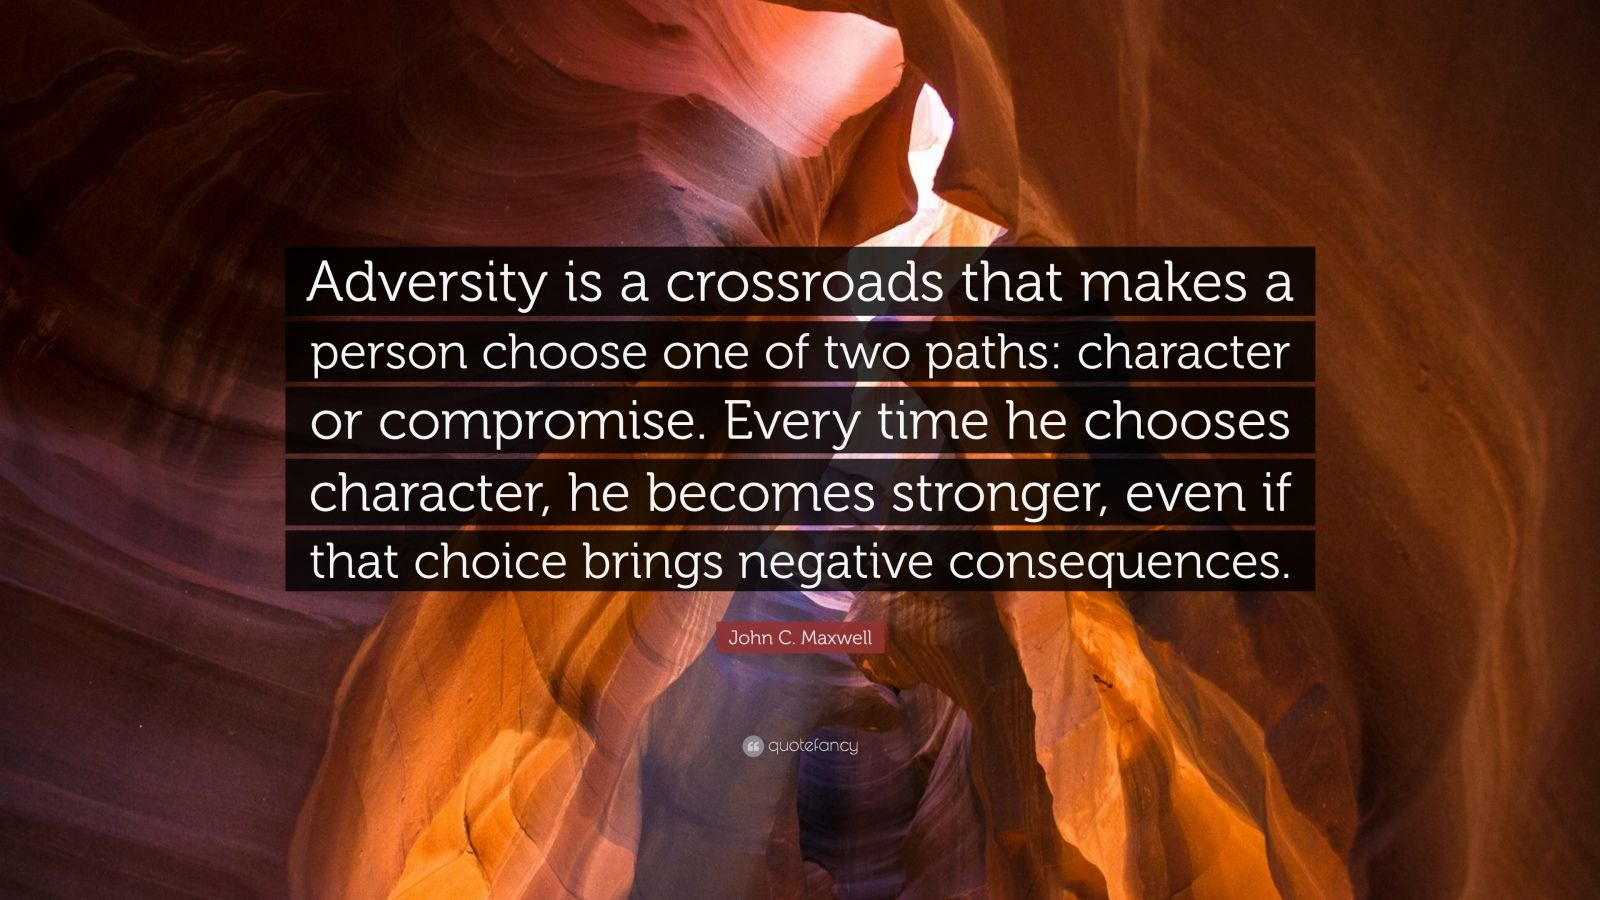 """John C. Maxwell Quote: """"Adversity is a crossroads that makes a person choose one of two paths: character or compromise. Every time he chooses character, he becomes stronger, even if that choice brings negative consequences."""""""